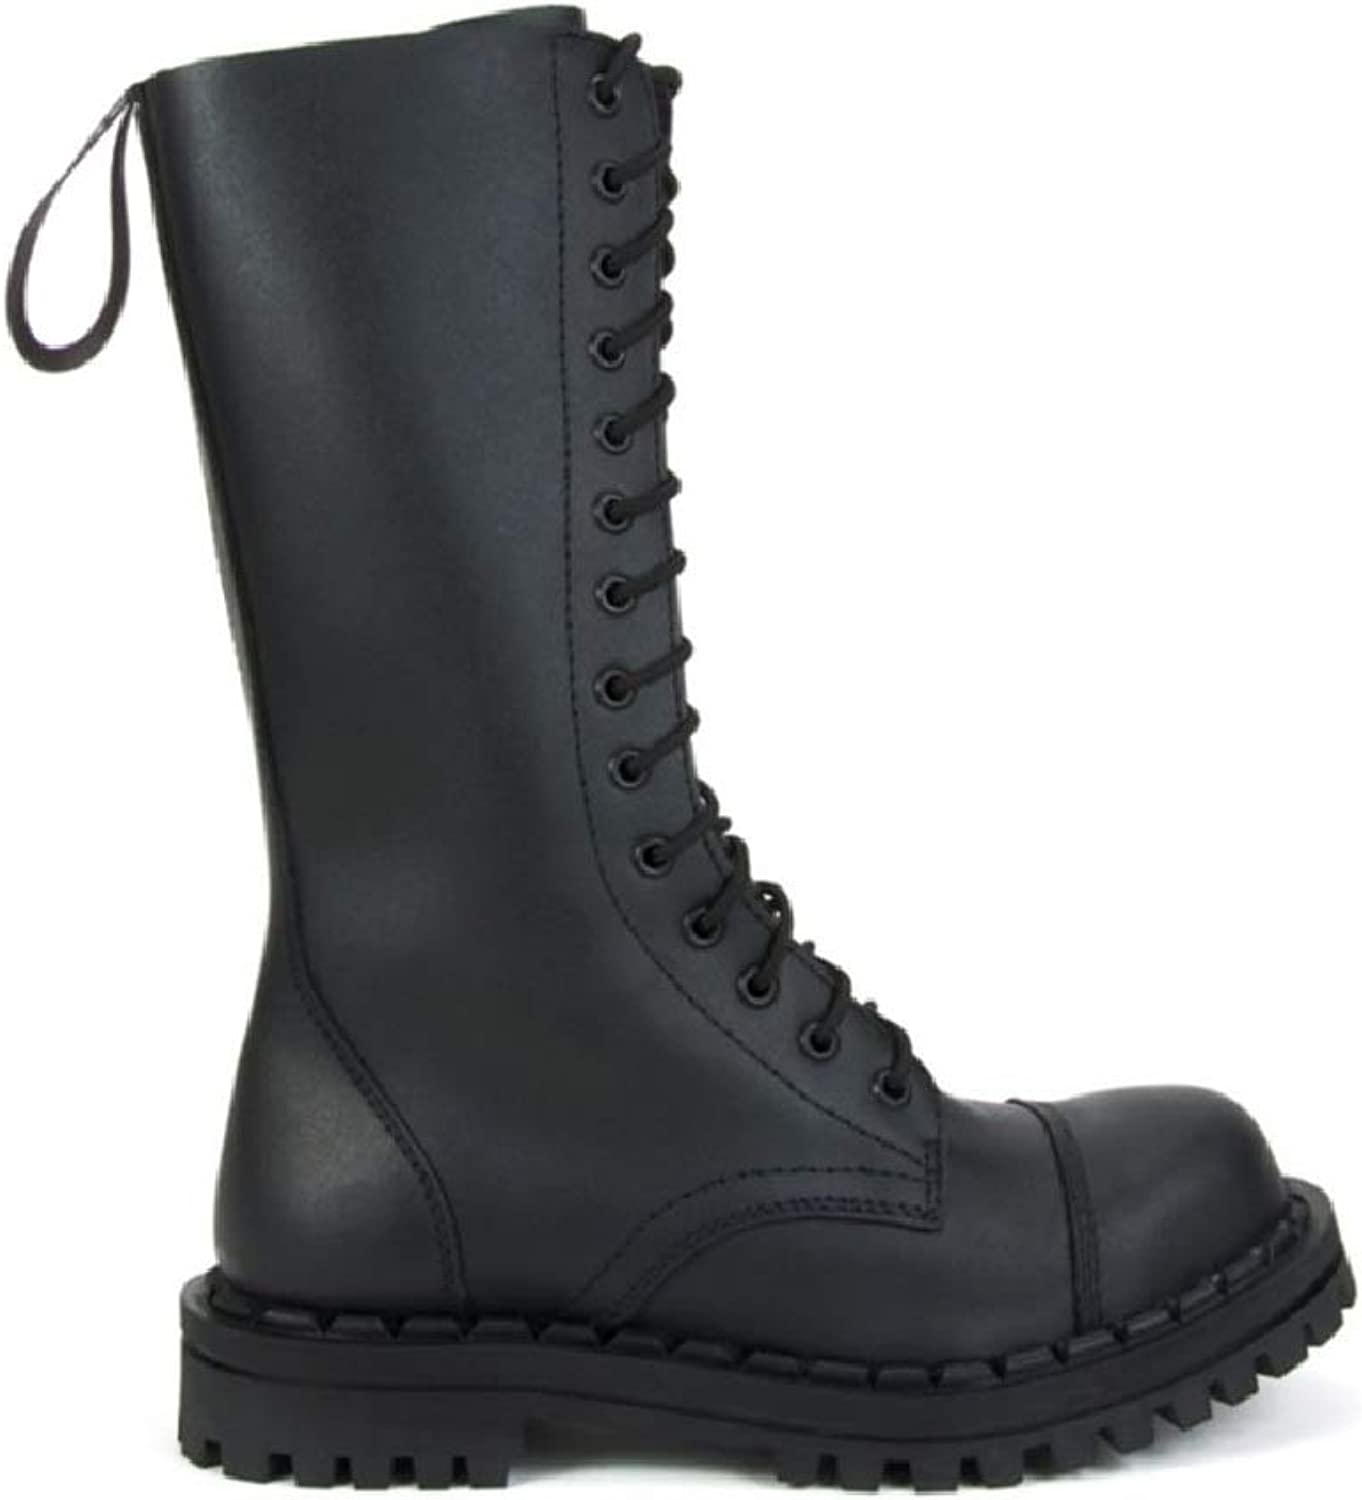 dfa8ef6f8f5af Altercore 352 Combat Boots Black Leather Ladies 14 Eyelets Military ...